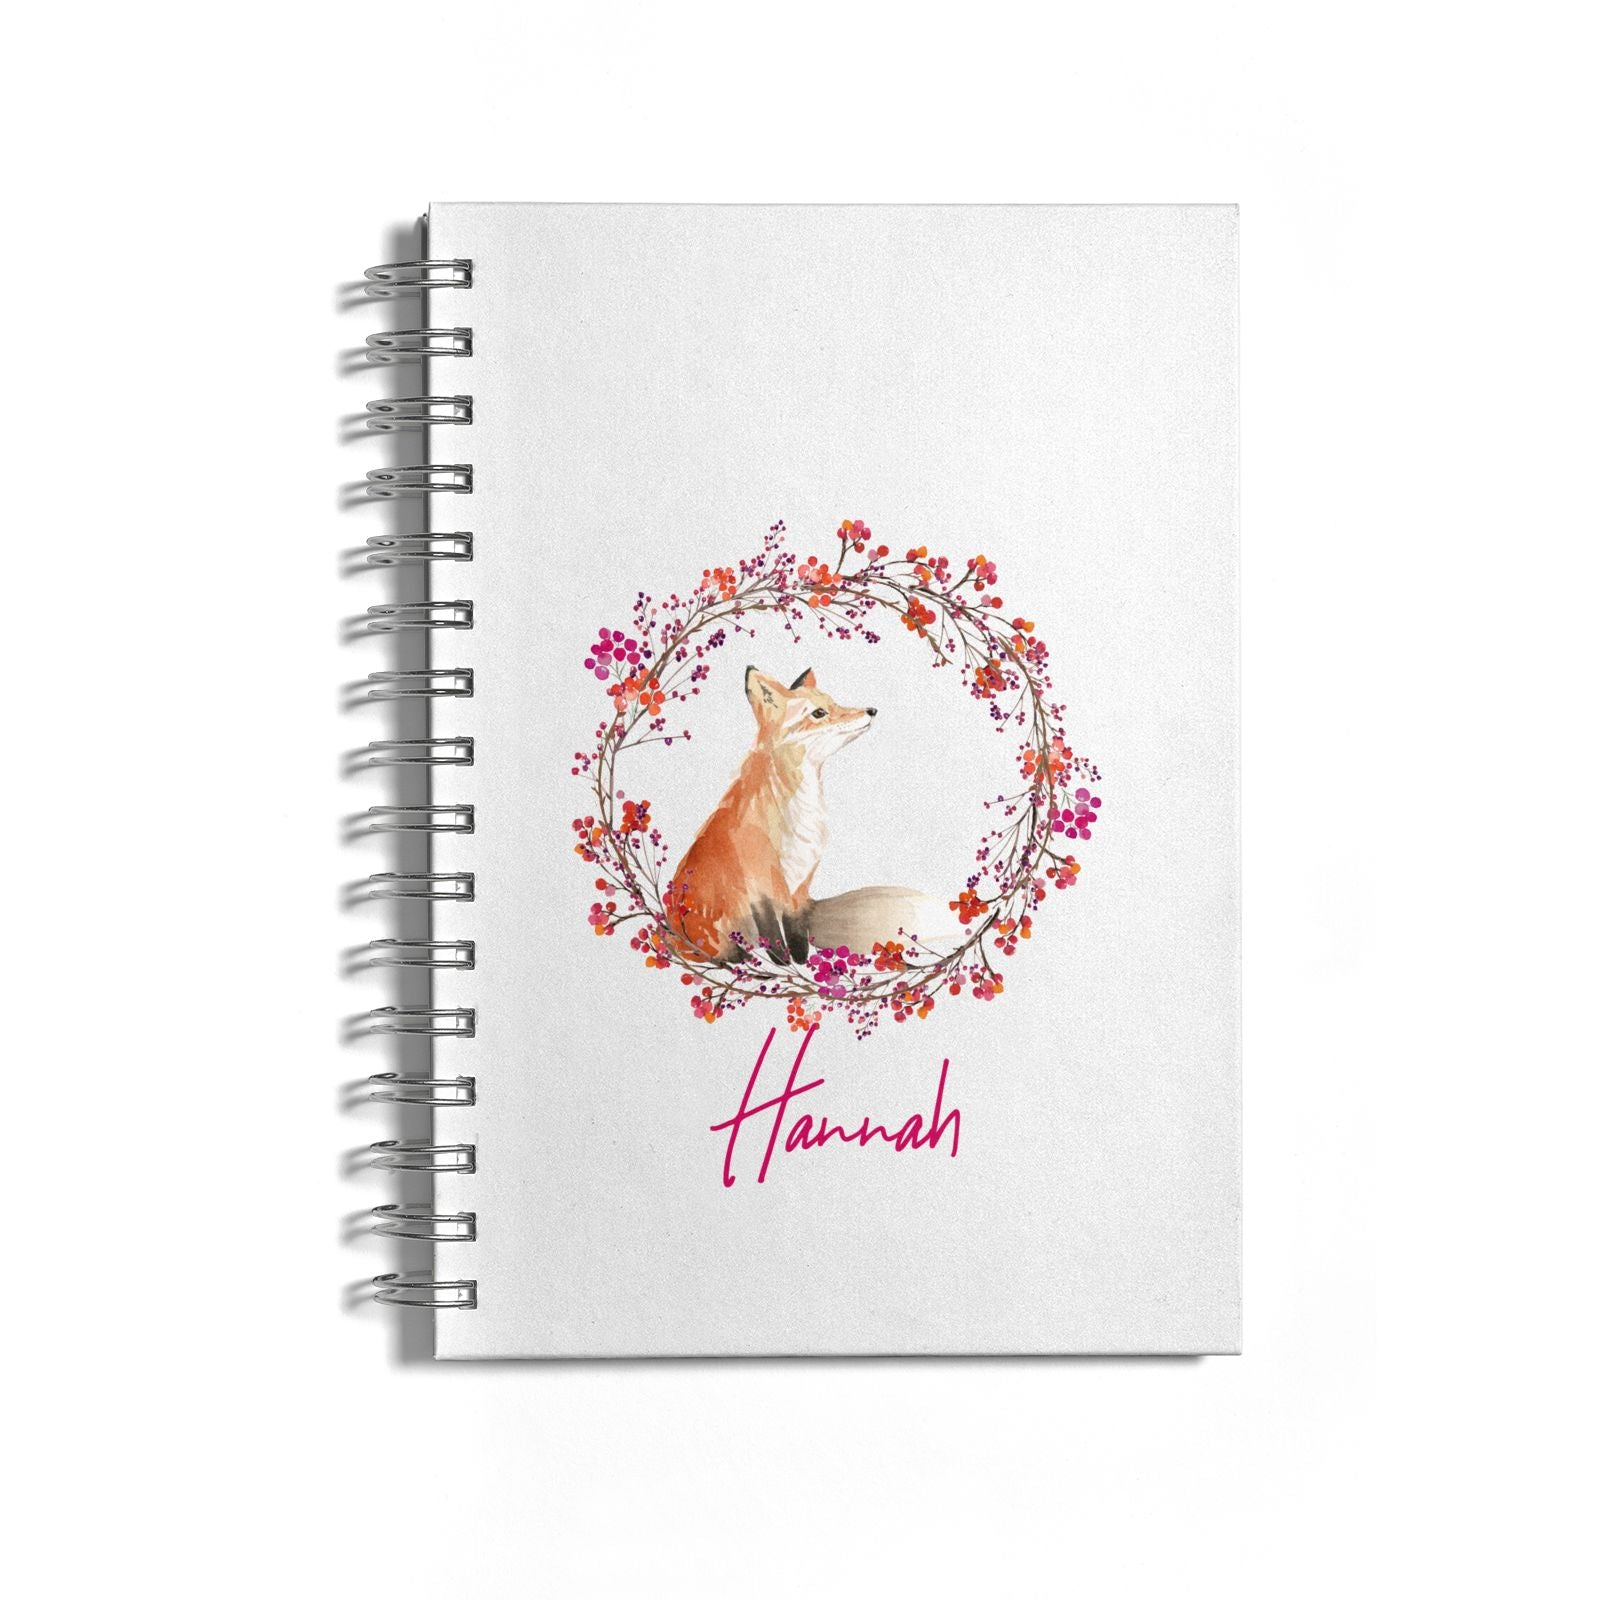 Personalised Fox Christmas Wreath Notebook with Silver Coil